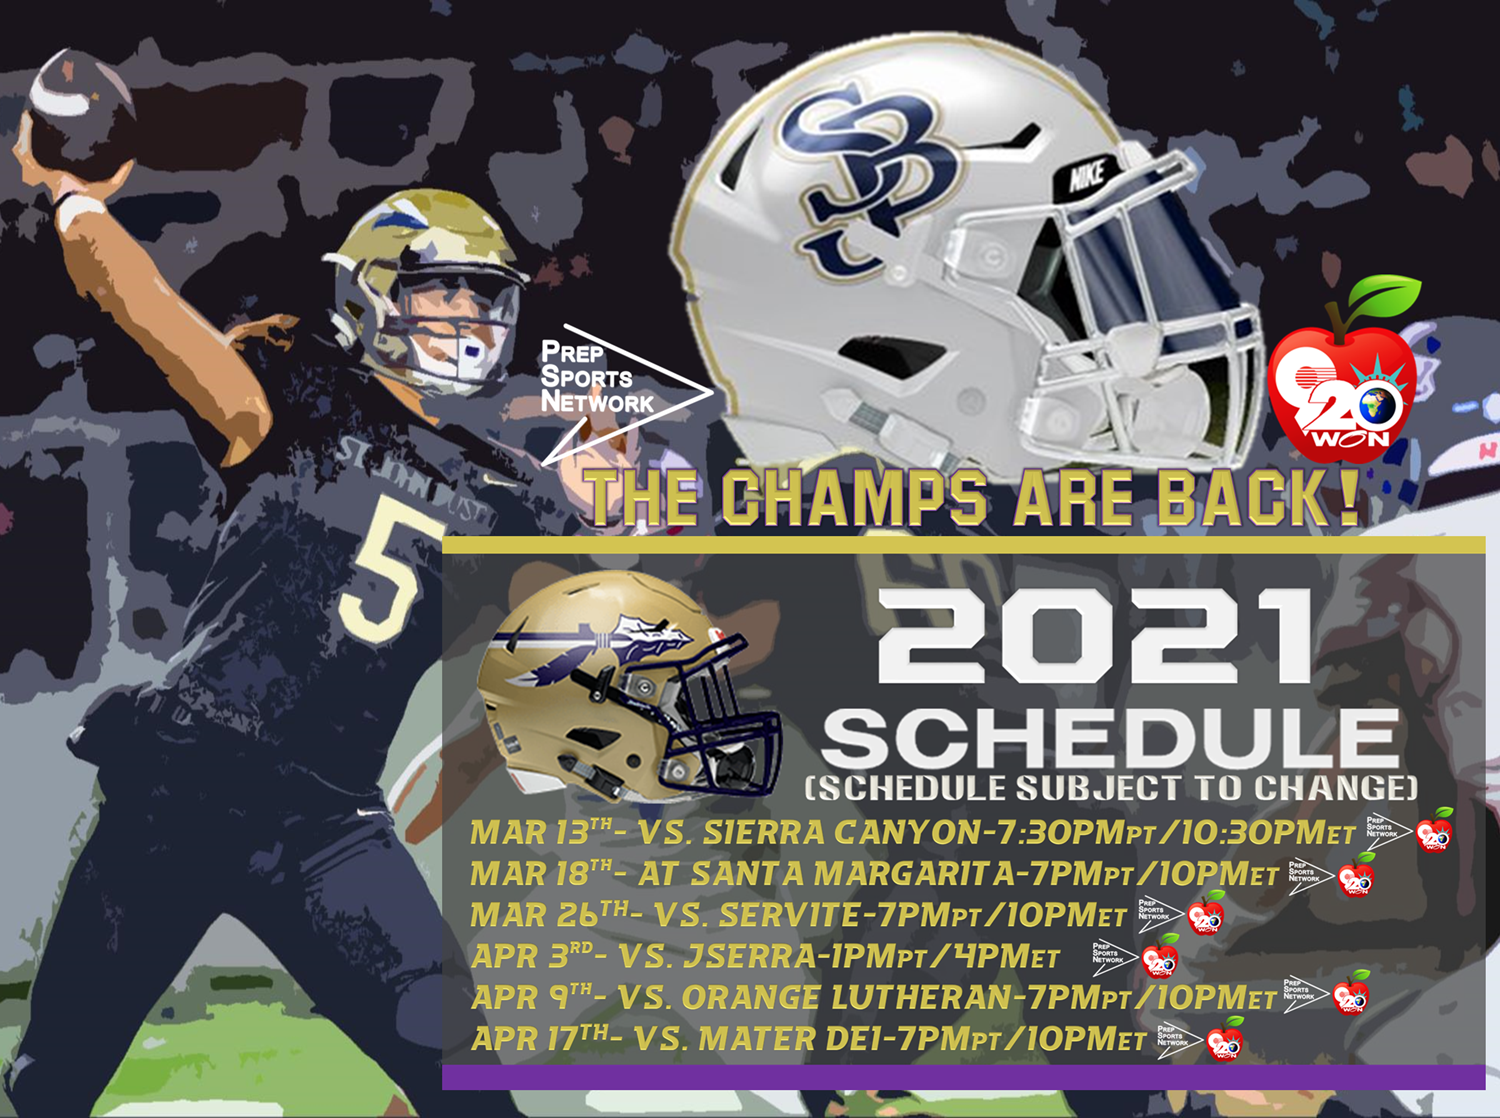 boscobraves2021schedule.png